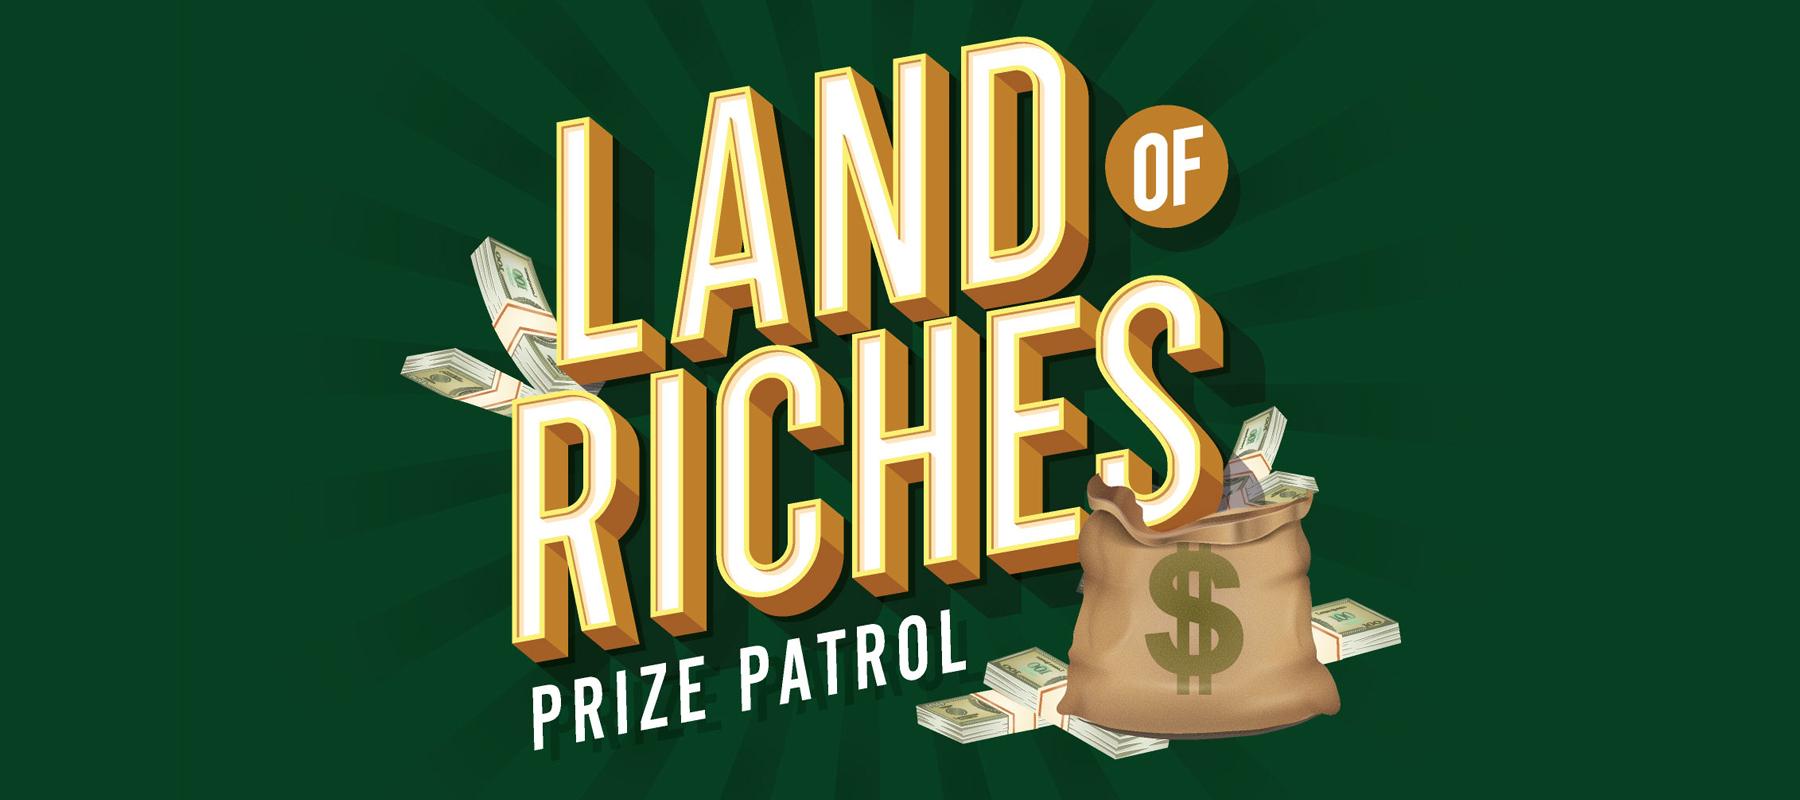 Land of Riches Prize Patrol